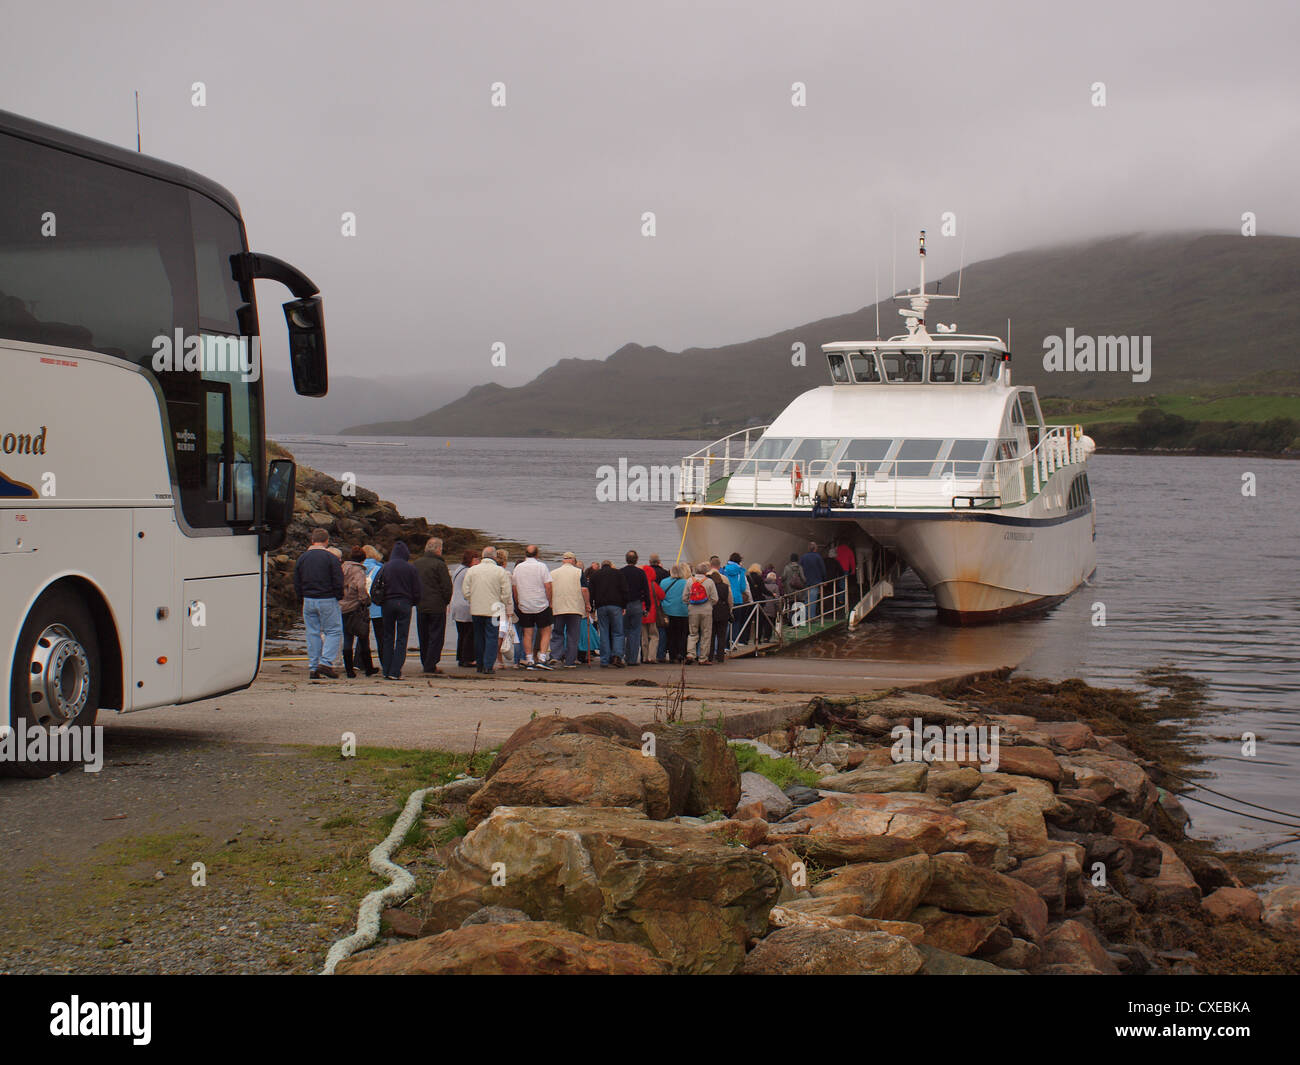 The Catamaran, Connemara-Lady preparing to embark passengers for a cruise along Killary glacial fjord in the West - Stock Image